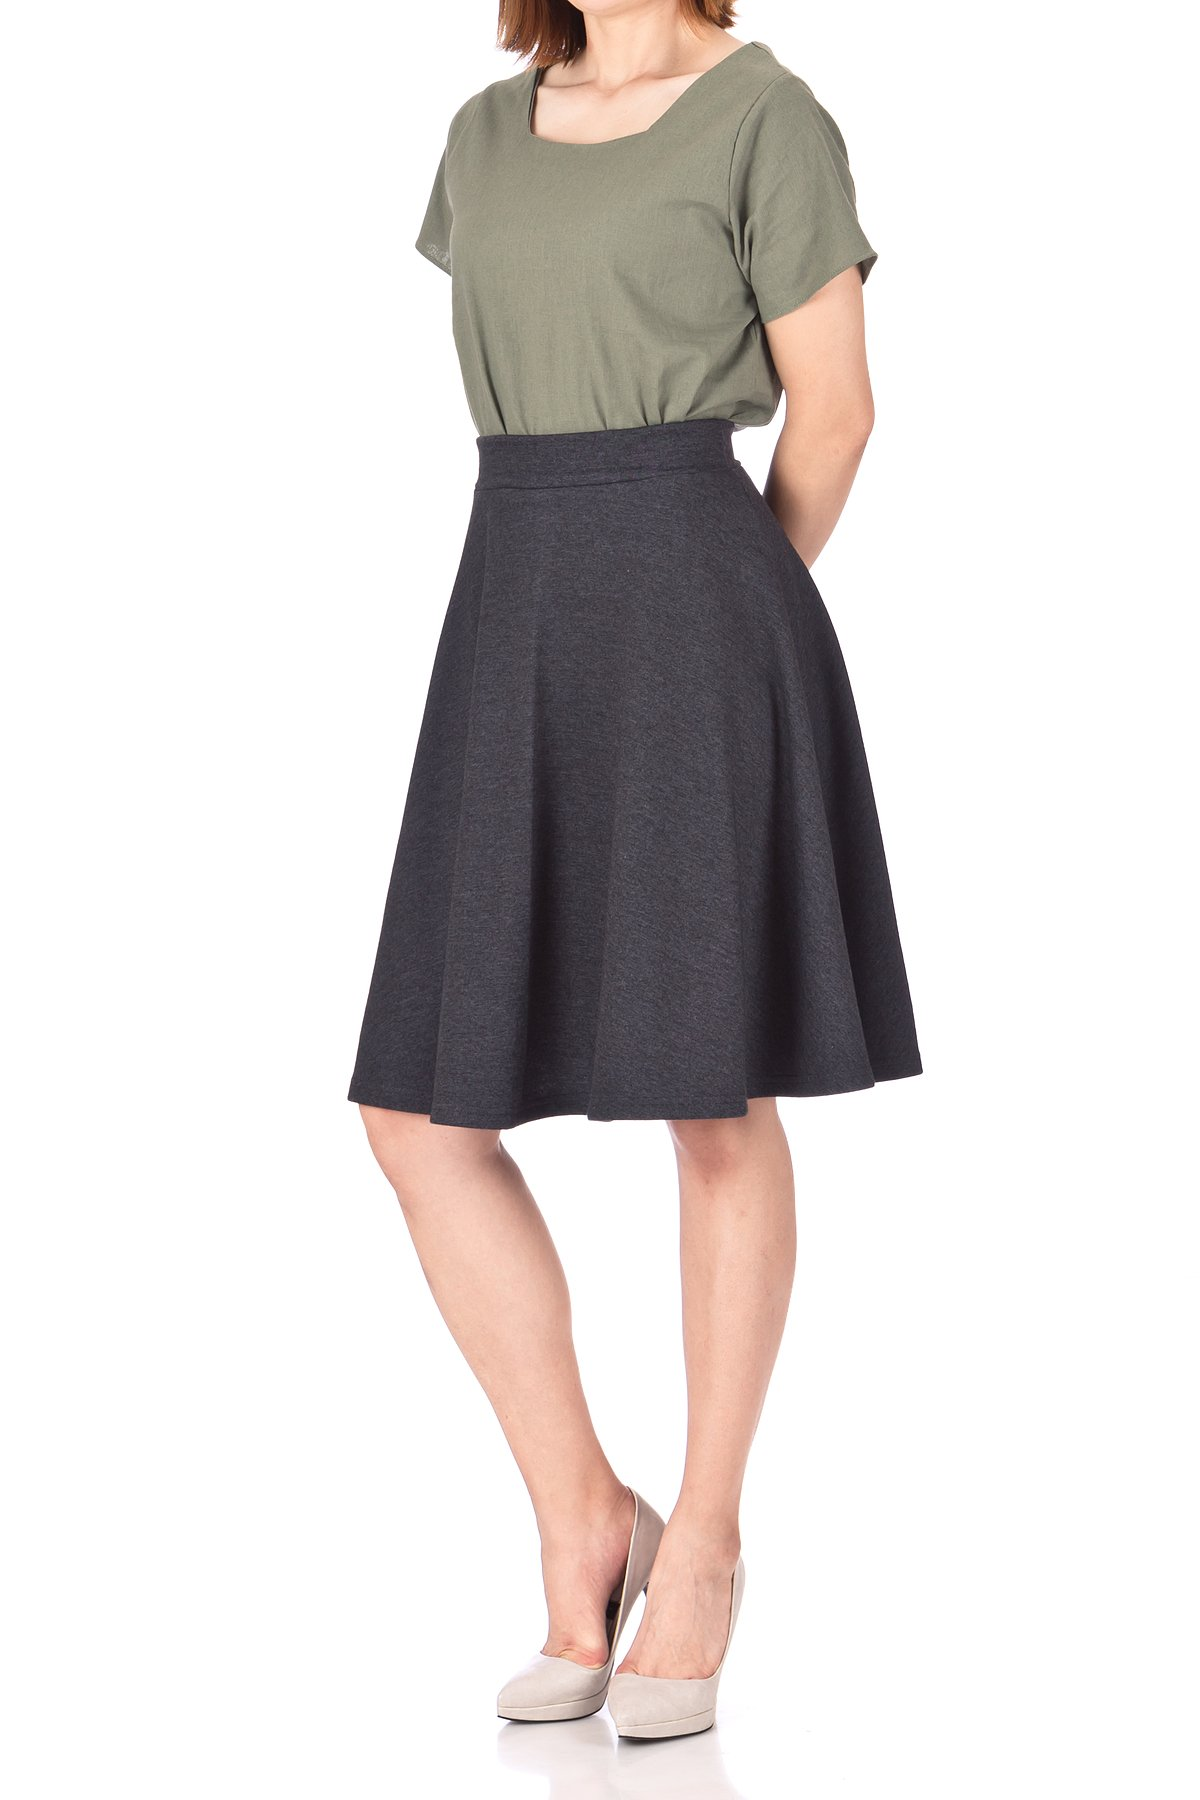 Comfy and Lovely Cotton Blend Versatile Casual Office High Waist A line Full Flared Swing Circle Skater Knee Length Skirt Charcoal 02 1